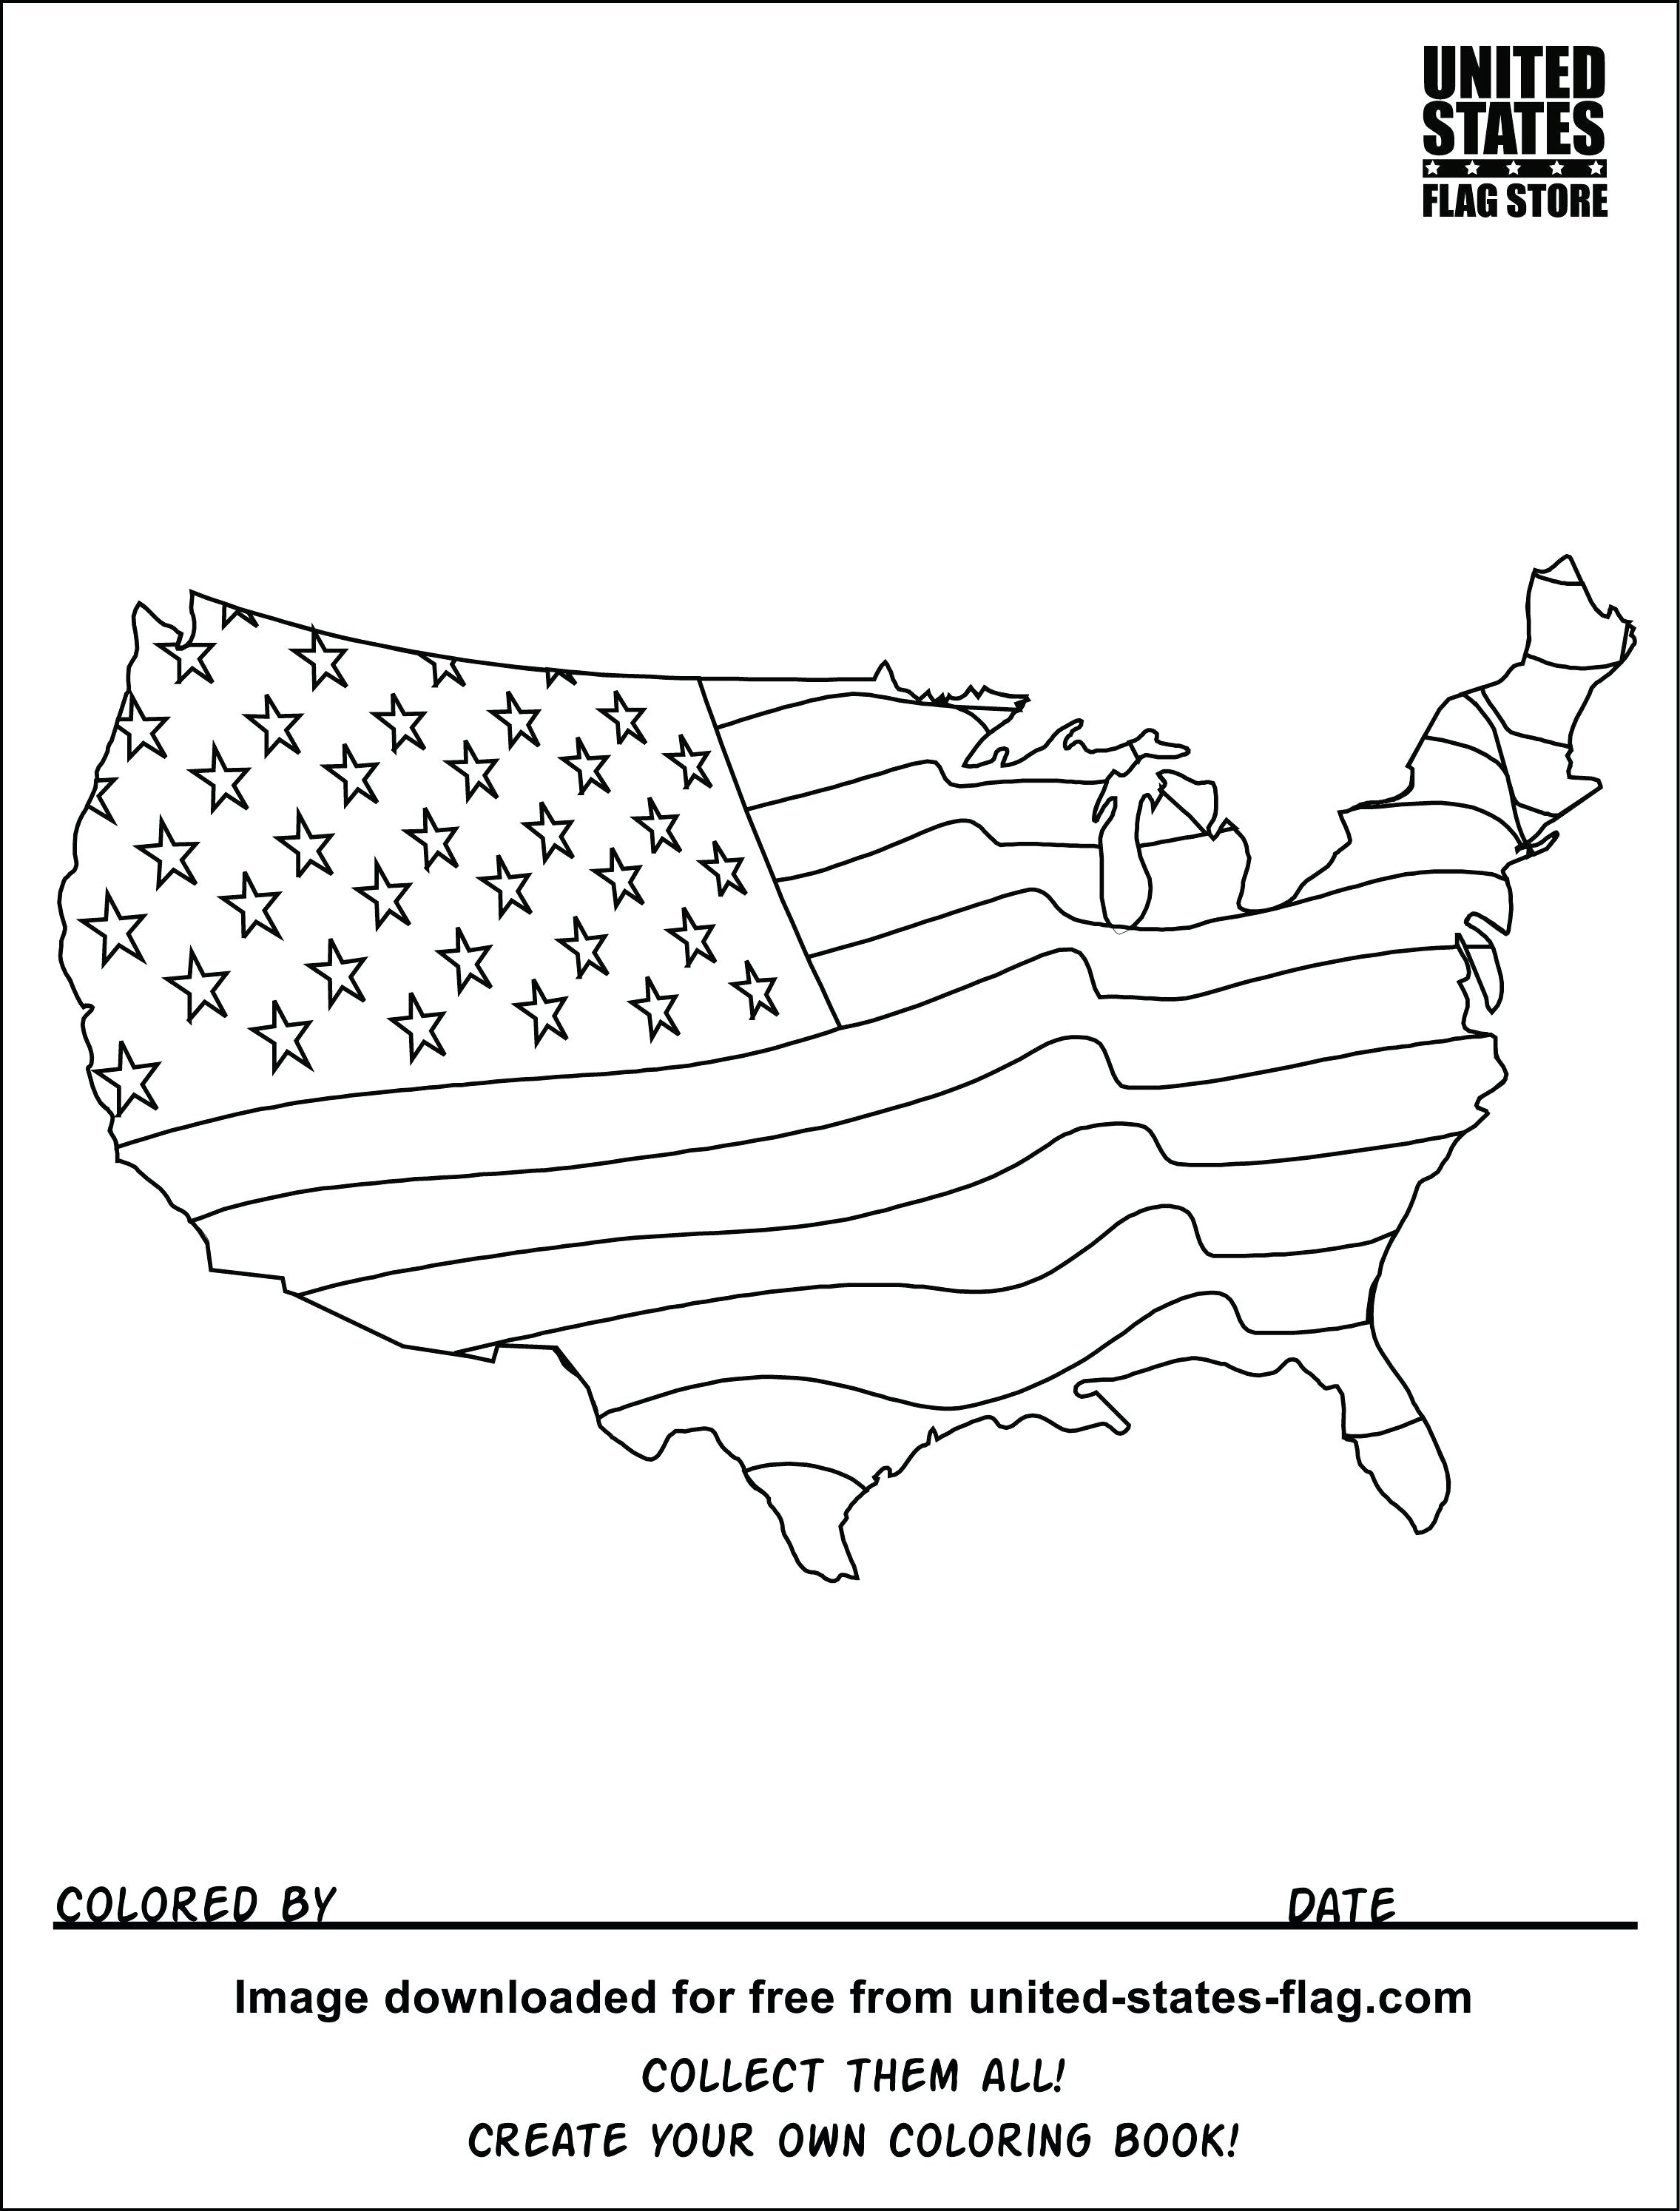 United States Flag Drawing at GetDrawings.com | Free for personal ...